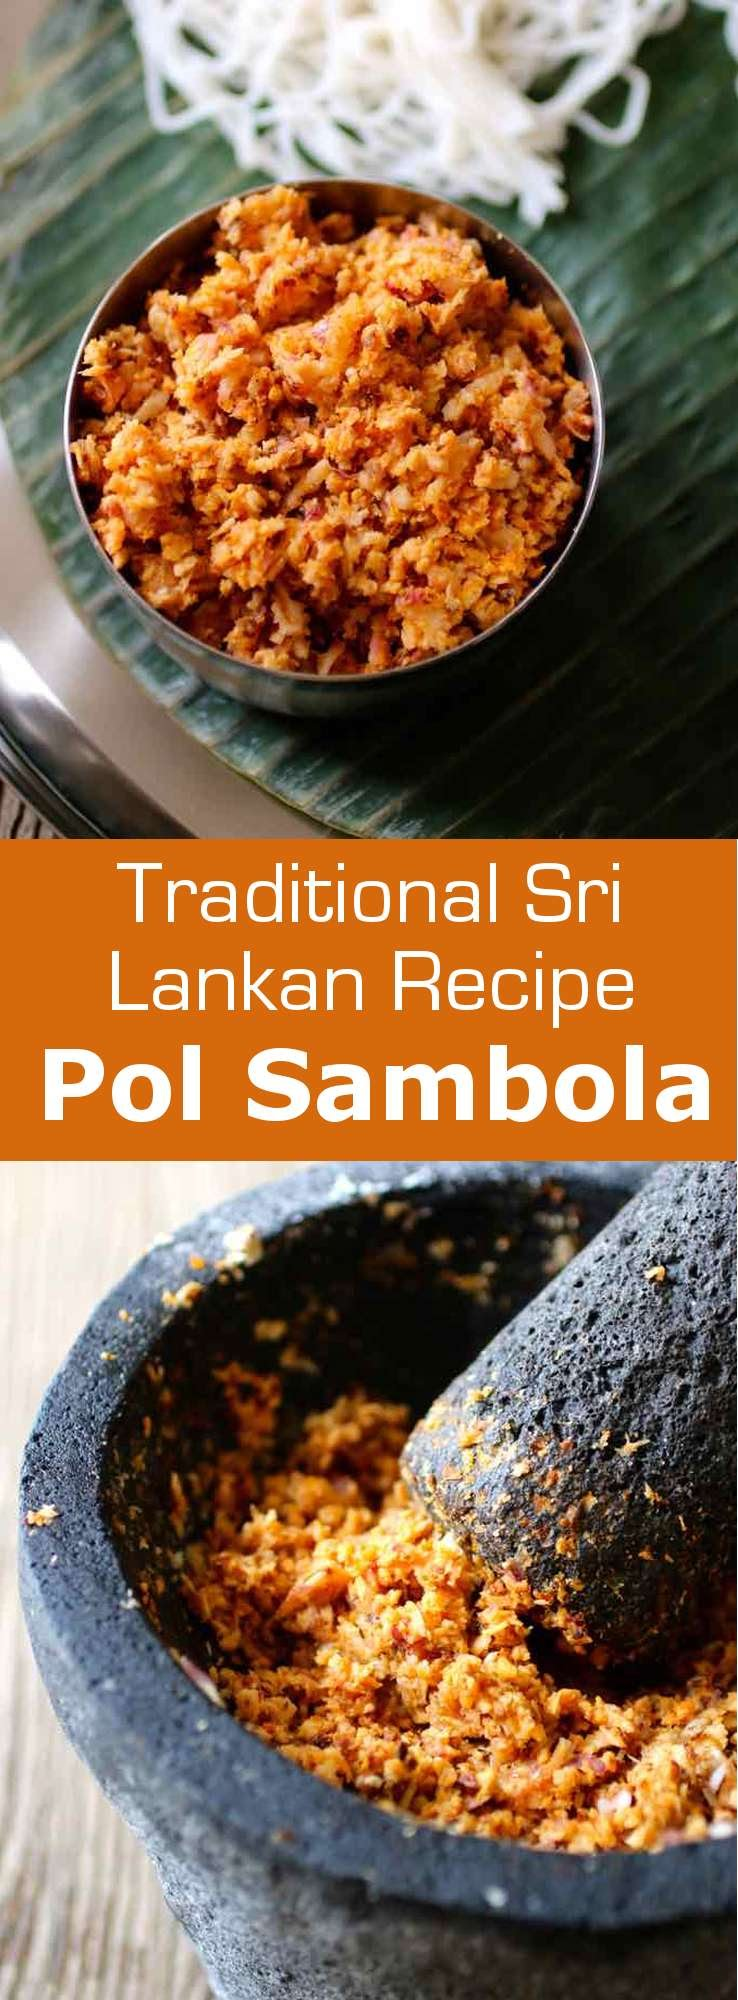 Pol sambol is a traditional Sri Lankan condiment prepared with freshly grated coconut, chili pepper and red onion. It is most often used as an accompaniment with rice, string hoppers, hoppers, as well as other dishes. #SriLanka #SriLankanCuisine #SriLankanChutney #SriLankanRecipe #WorldCuisine #196flavors